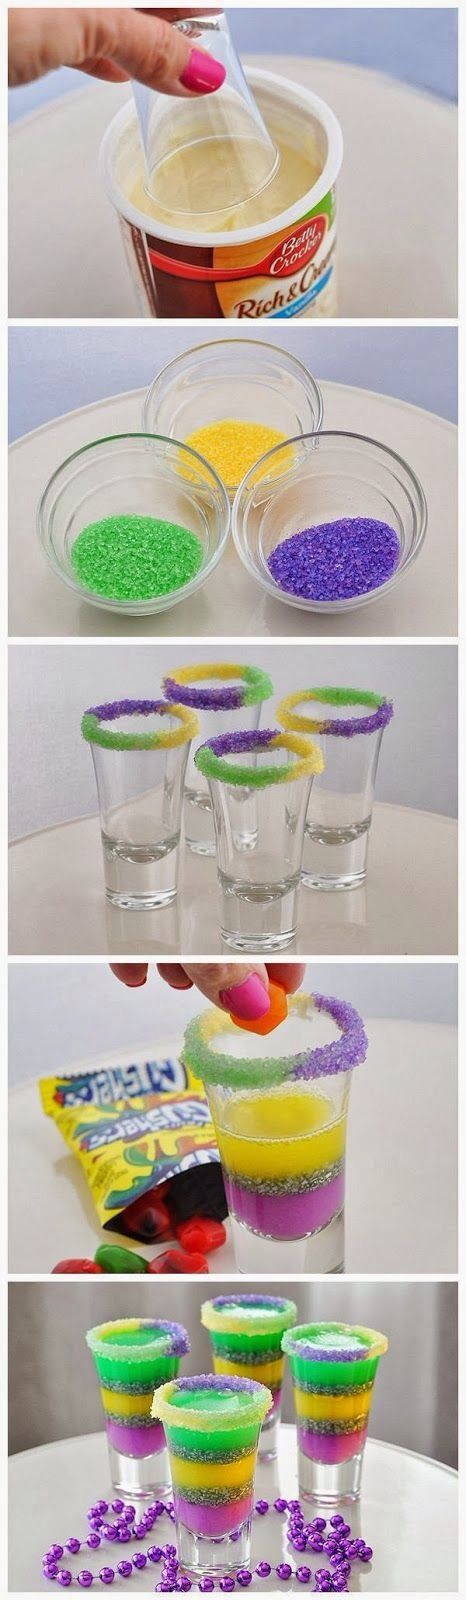 Fun drink for family!